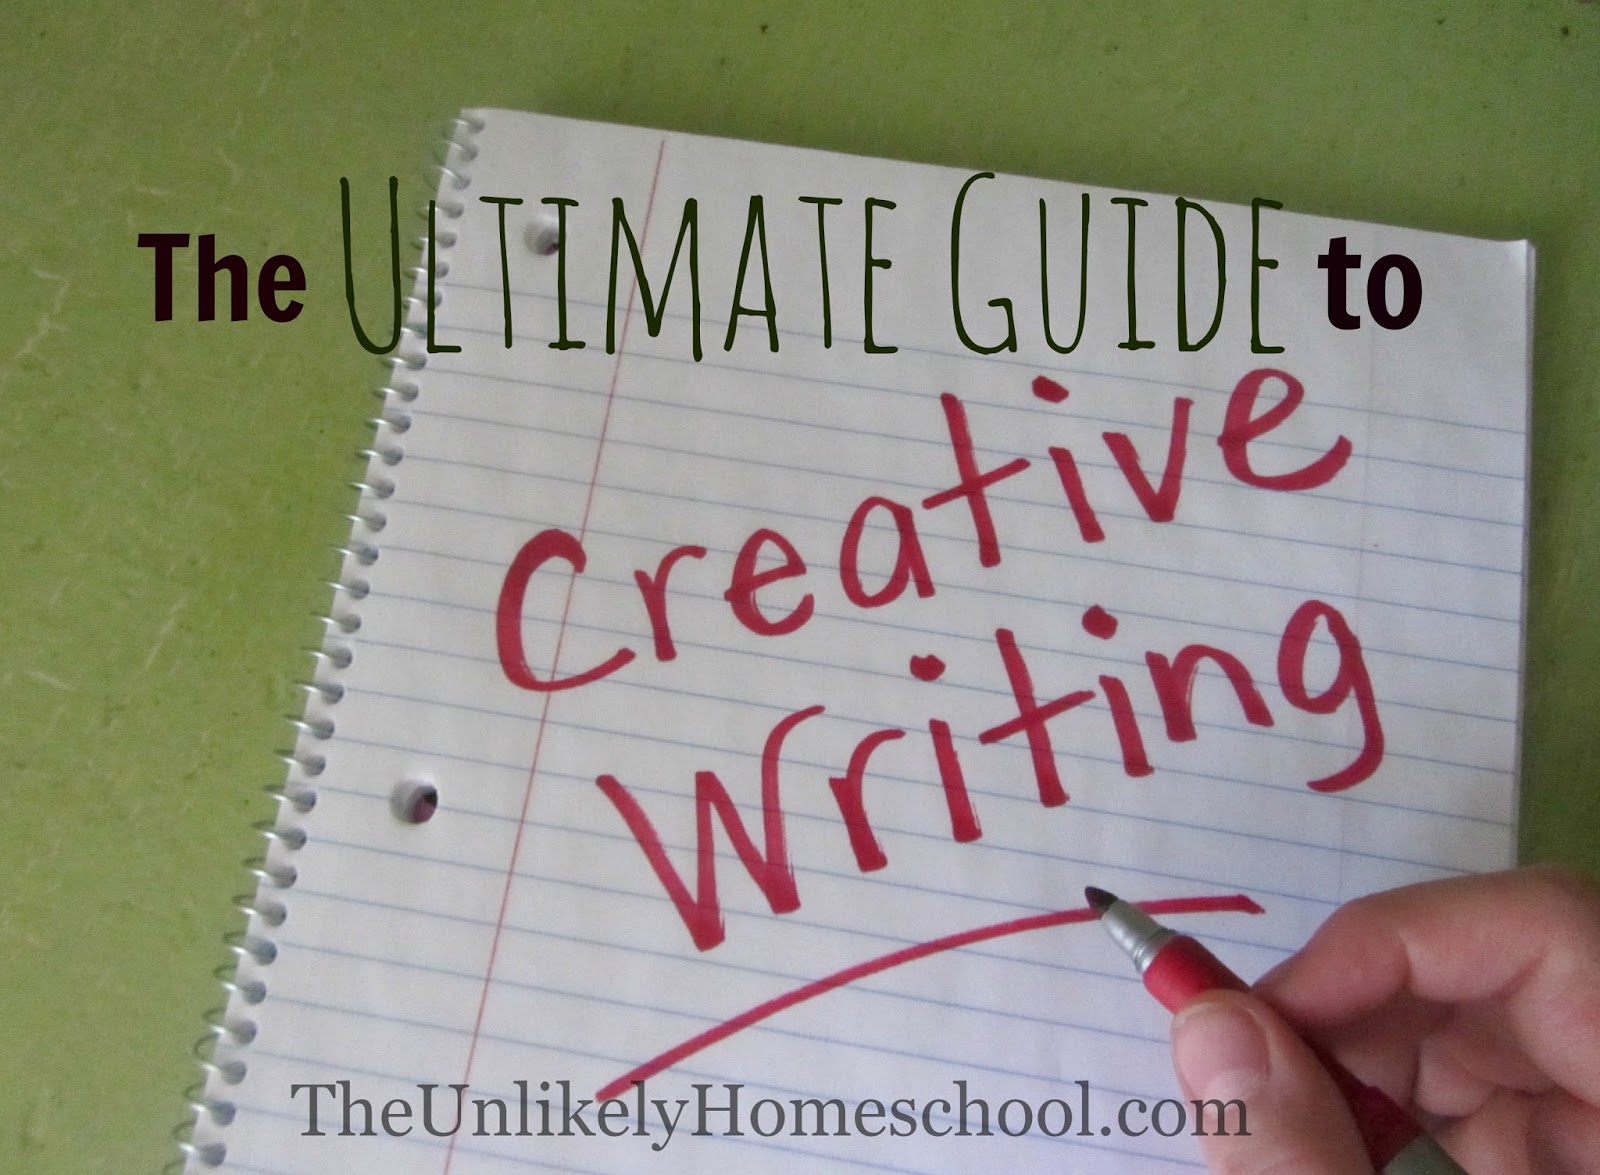 creative writing for children Creative writing activities learning to write well is an important skill if you want to do well at school and in a workplace try these printable creative writing activities to help your child become a better writer.